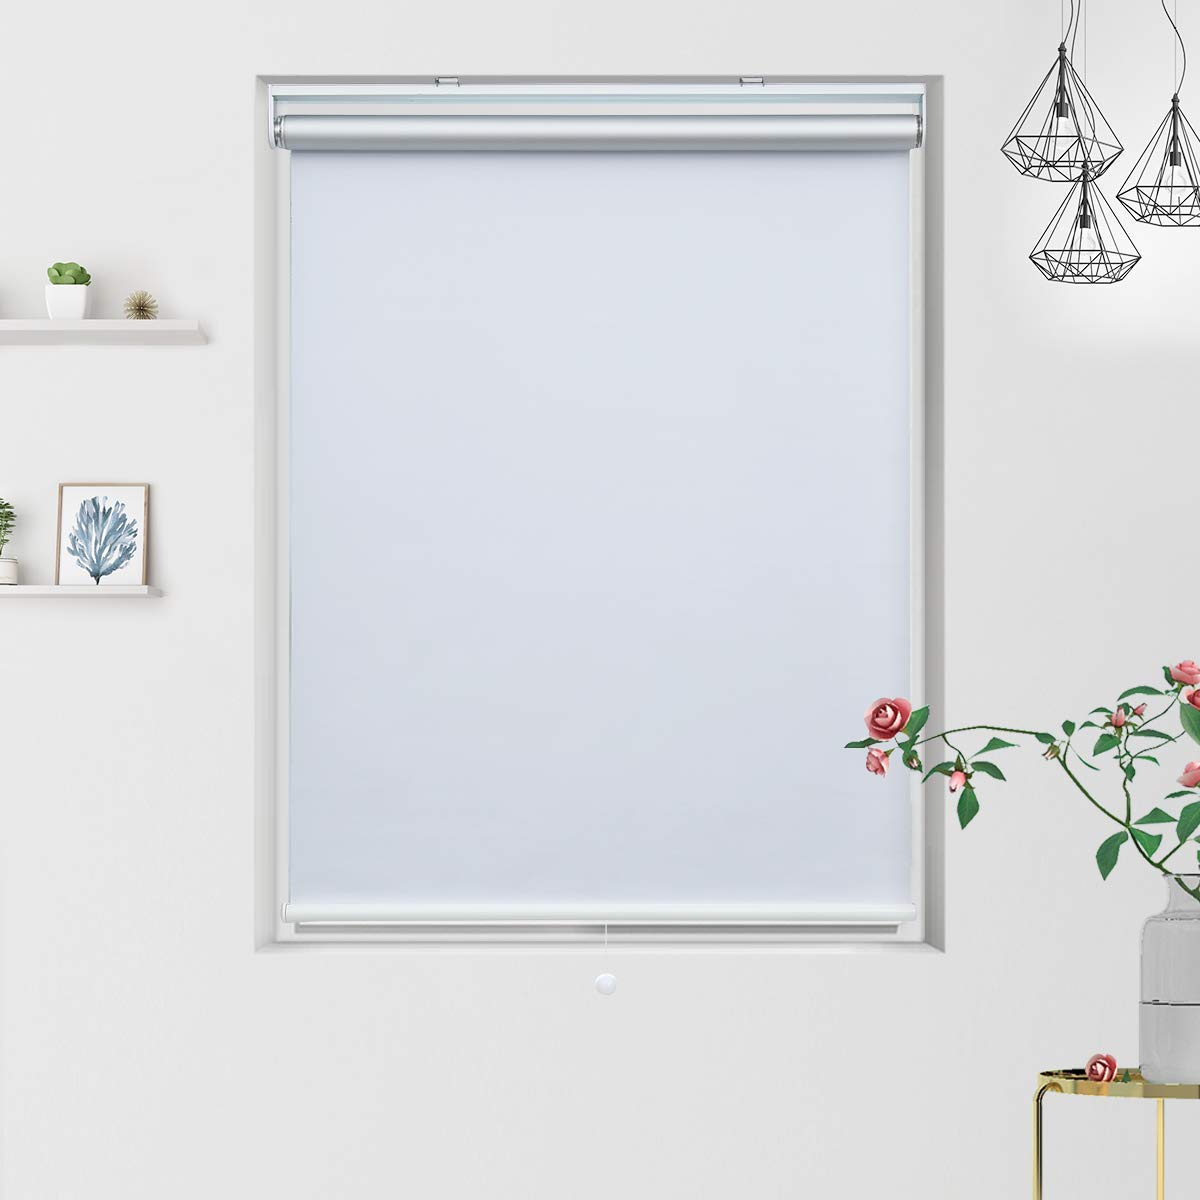 "Grandekor Blackout Shades Blackout Blinds Cordless Shade Roller Shades for Windows, Window Blackout Shades Roller Blinds Blackout with Spring System White, 36""(W) x 72""(H)"